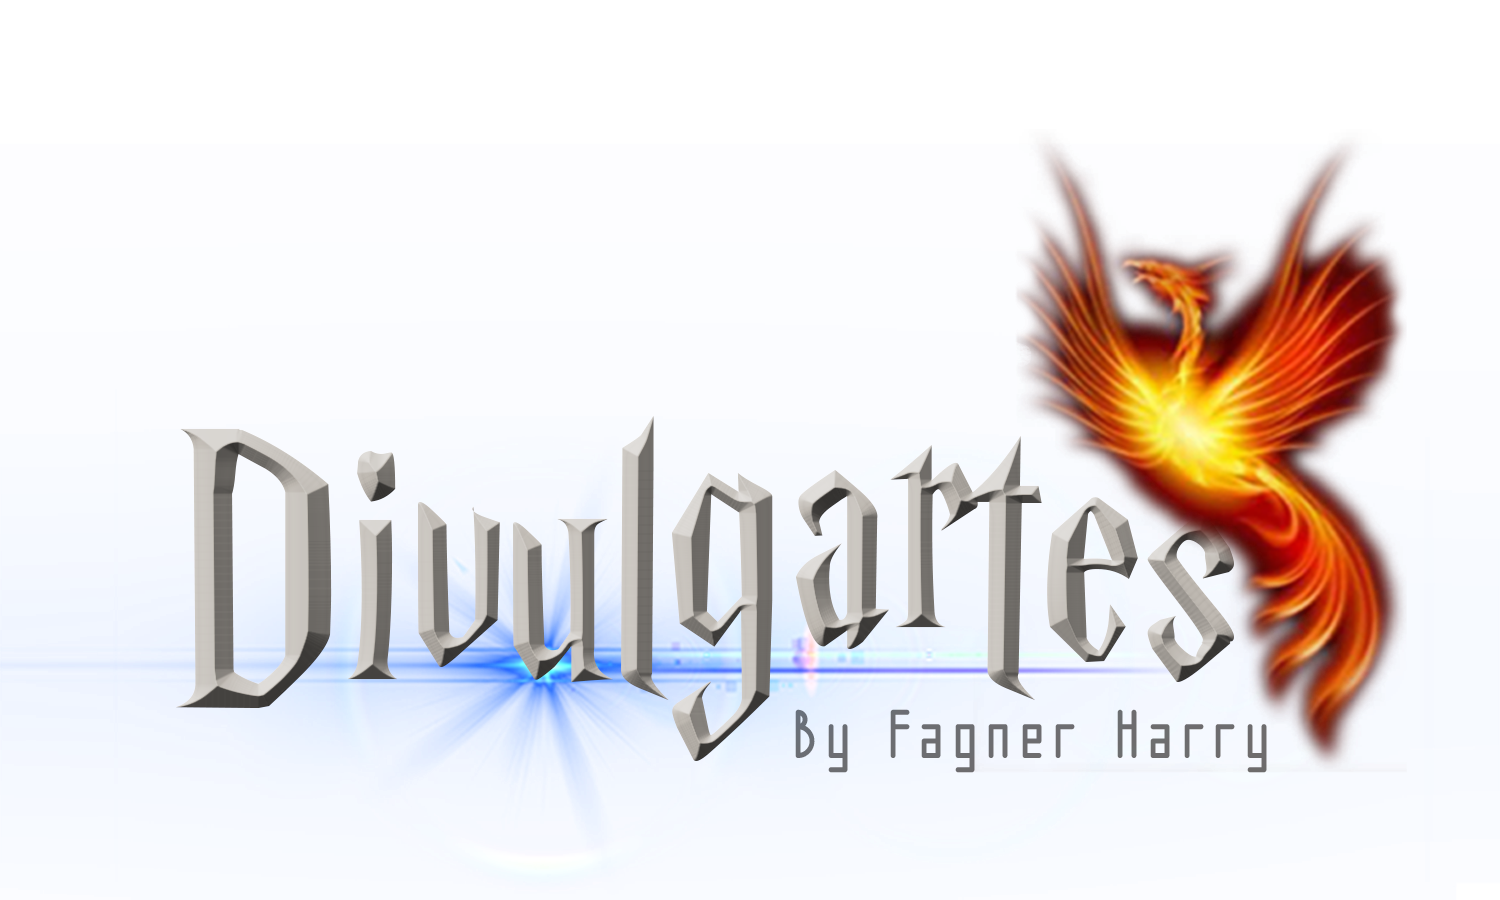 Divulgartes by Fagner Harry